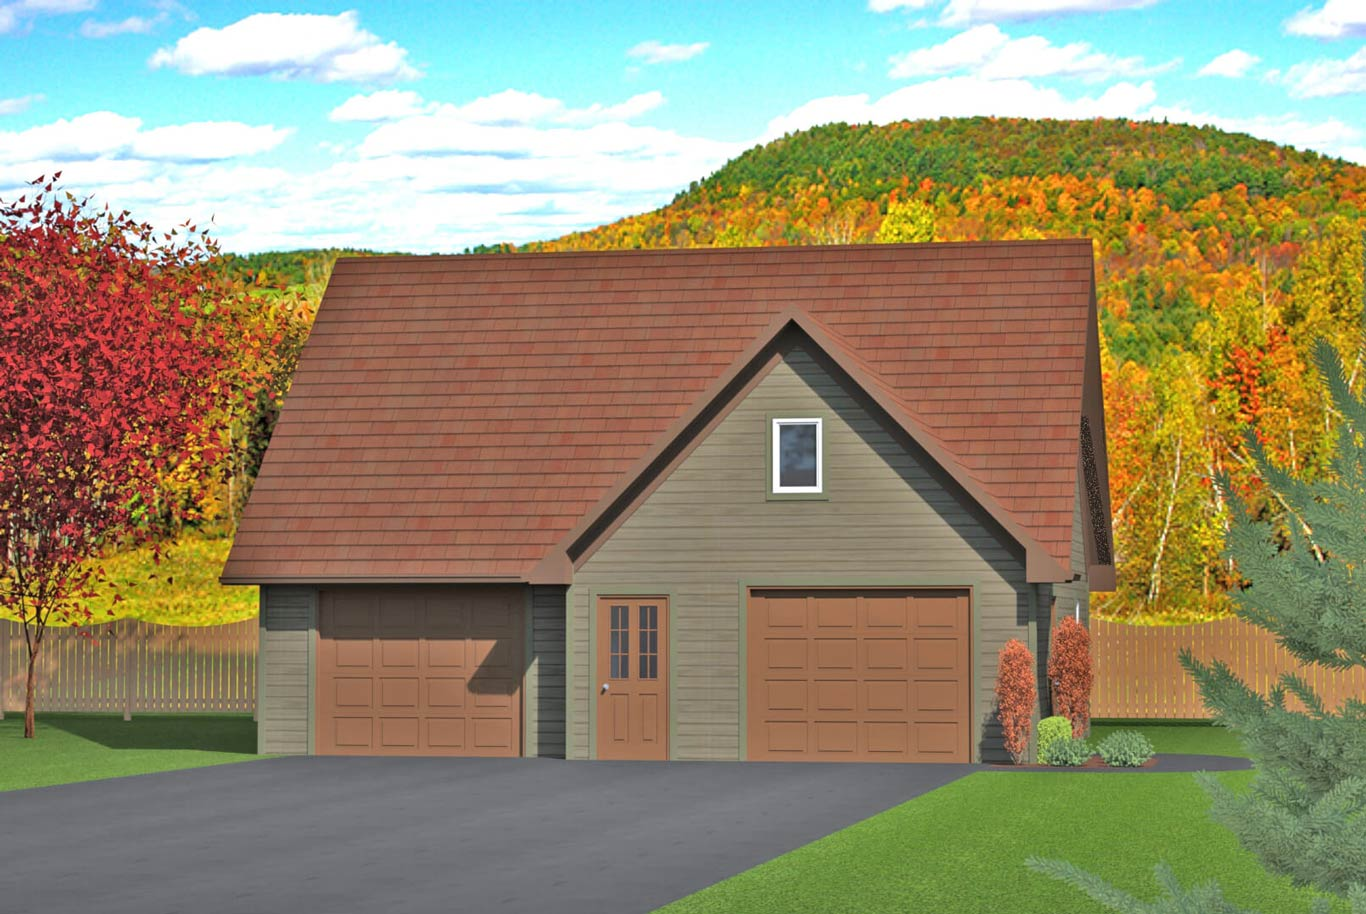 962 sq.ft. timber mart 2 car garage exterior render